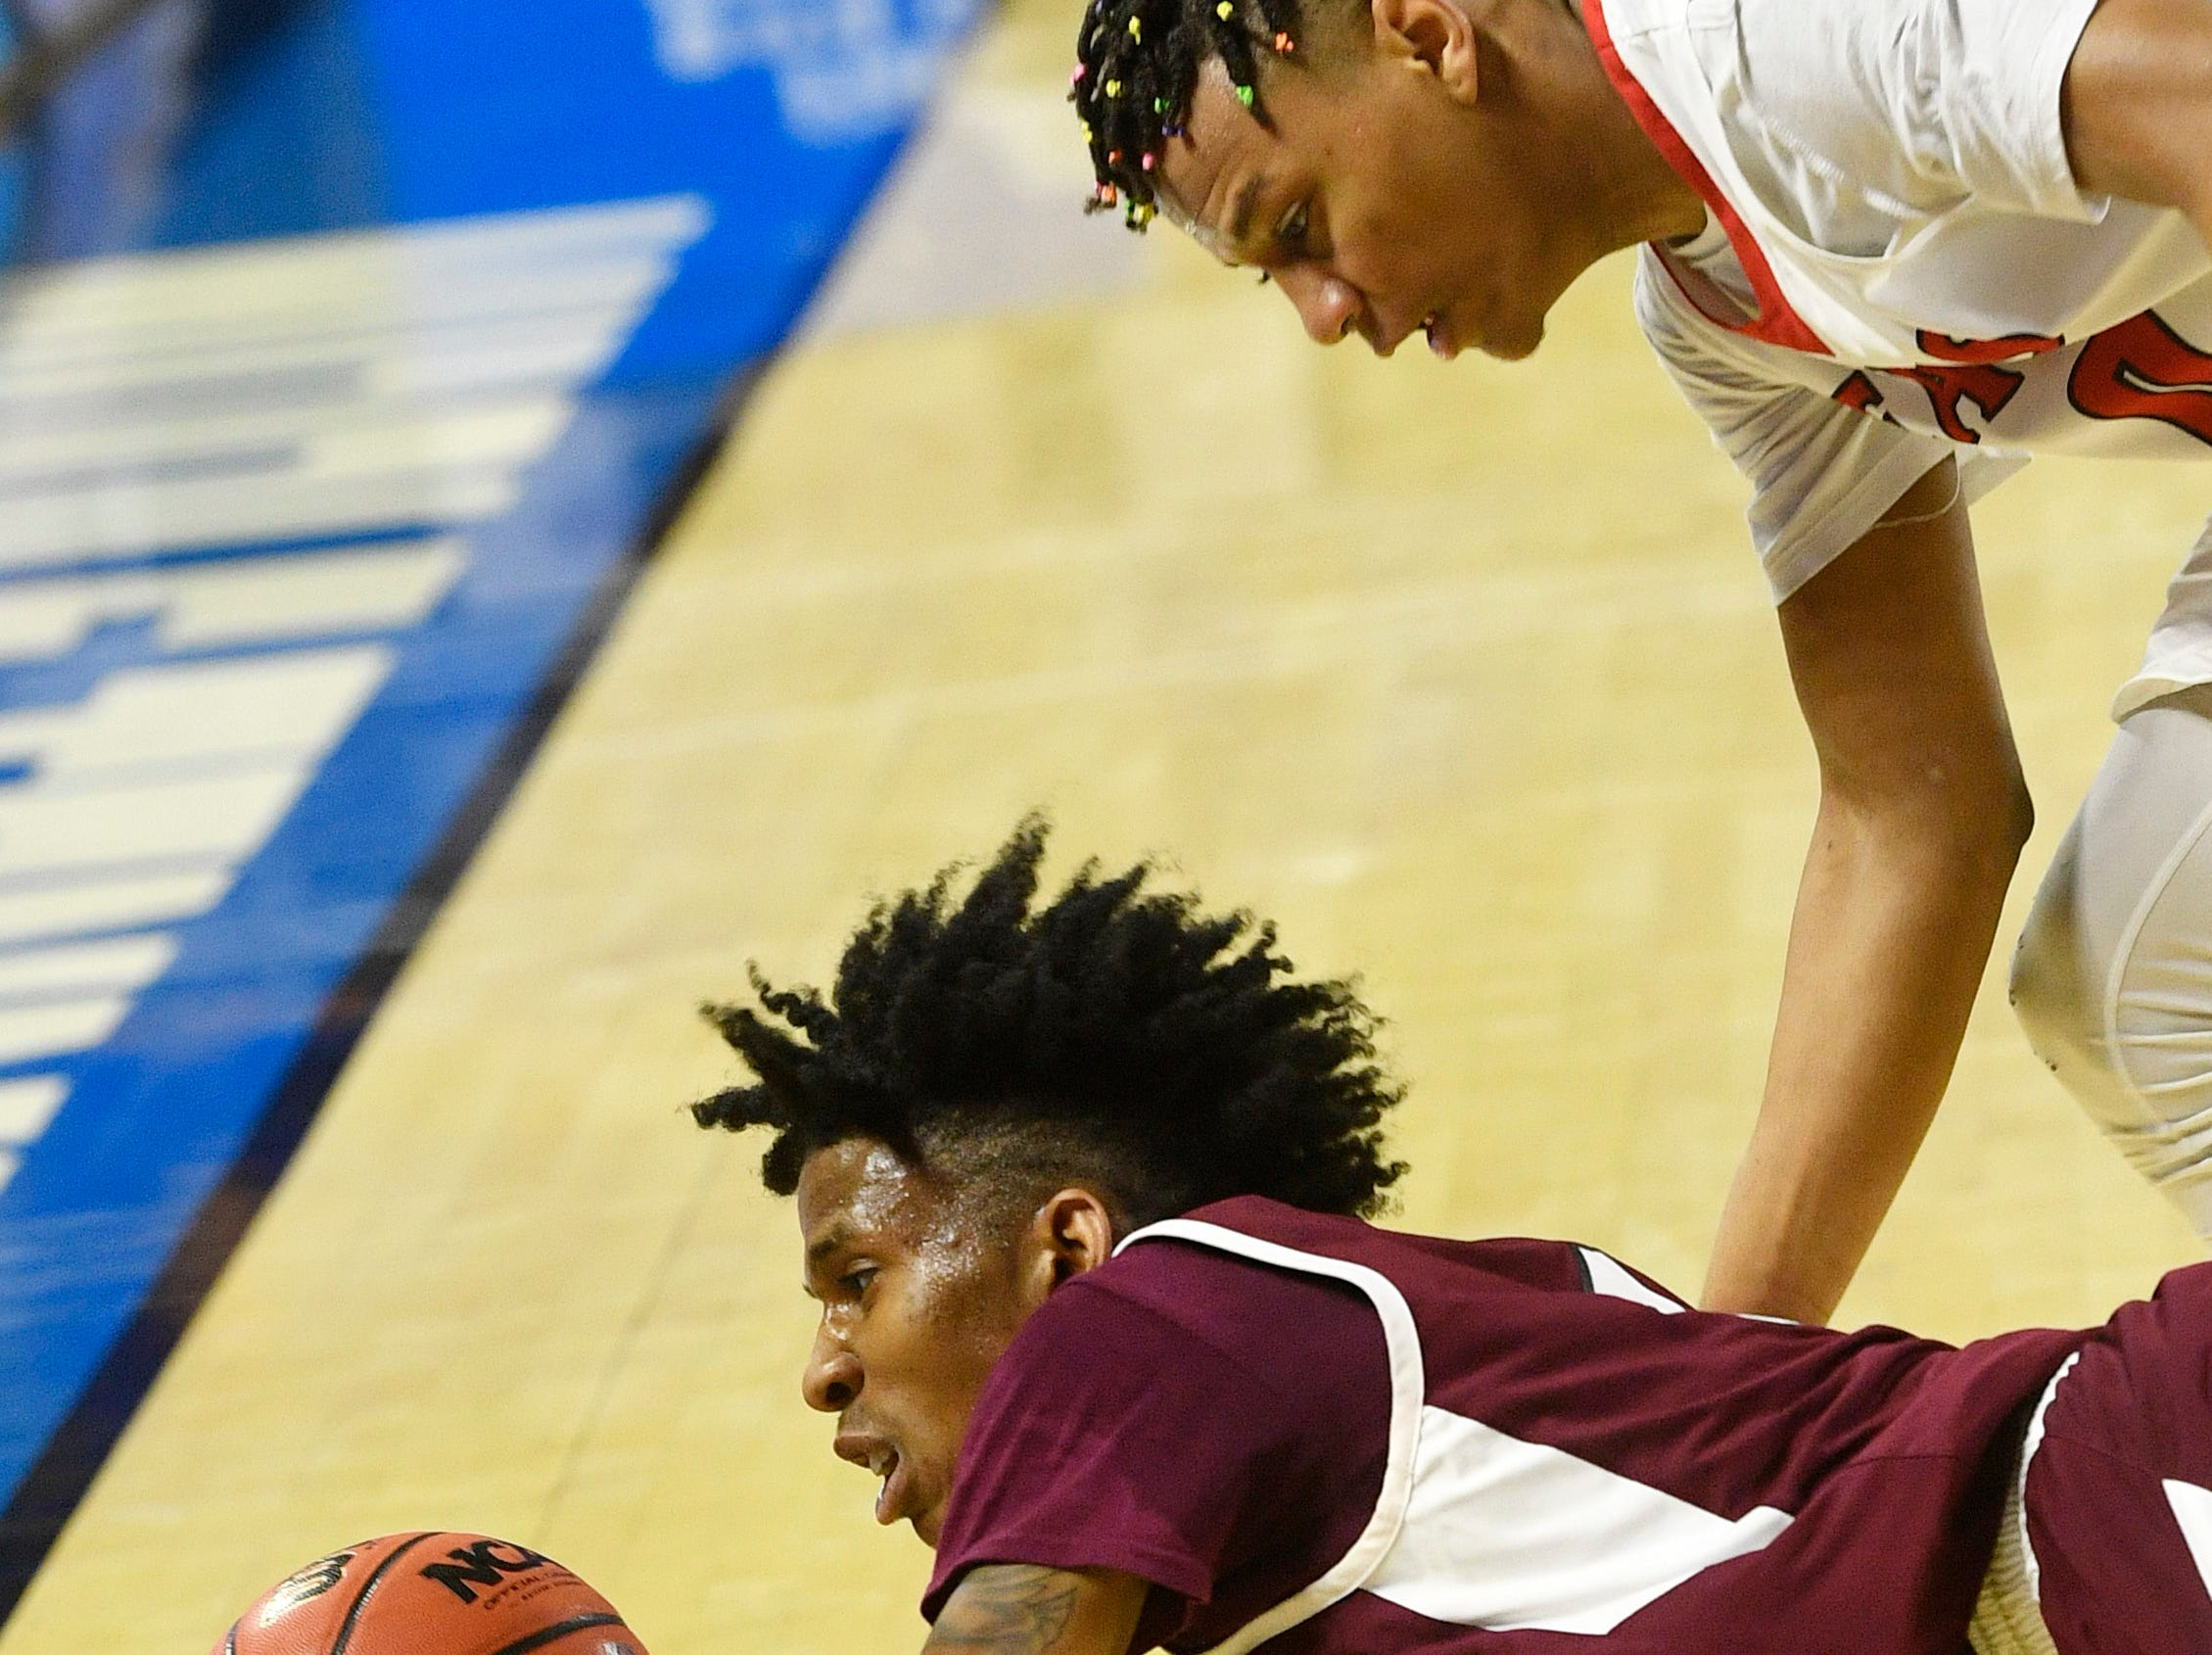 Fulton Edward Lacy (4) tries to save a ball going out of bounds as East Nashville plays Fulton in the TSSAA Class AA semifinal  Friday, March 15, 2019, in Murfreesboro, Tenn.